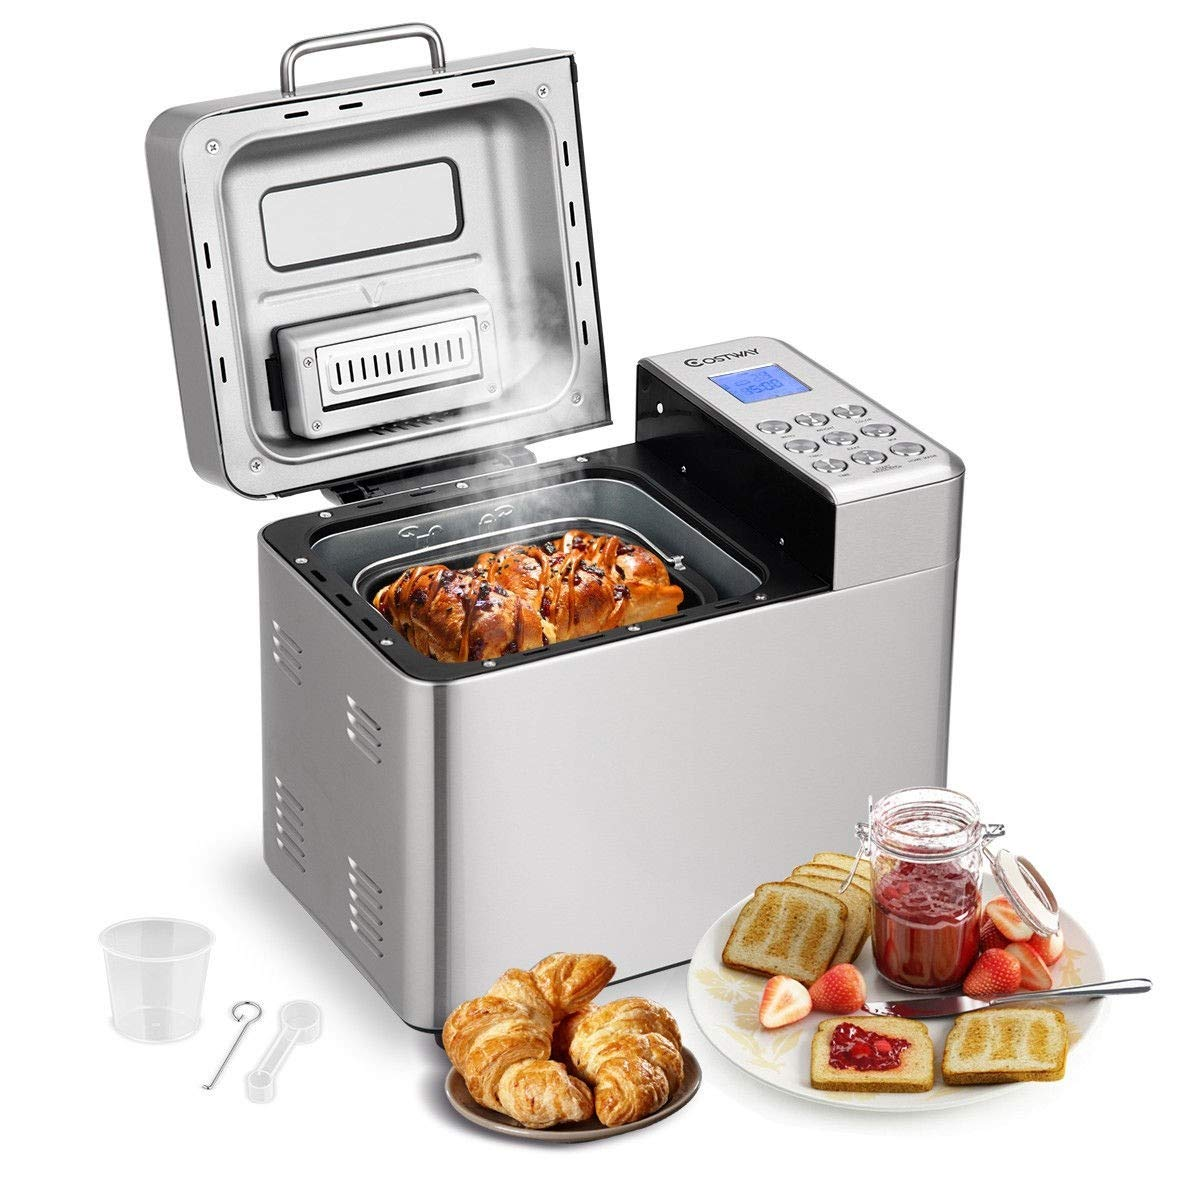 Stainless Steel Automatic Bread Machine - 2LB Programmable Bread Maker with 15 Programs,15 Hours Delay Timer, 1 Hour Keep Warm